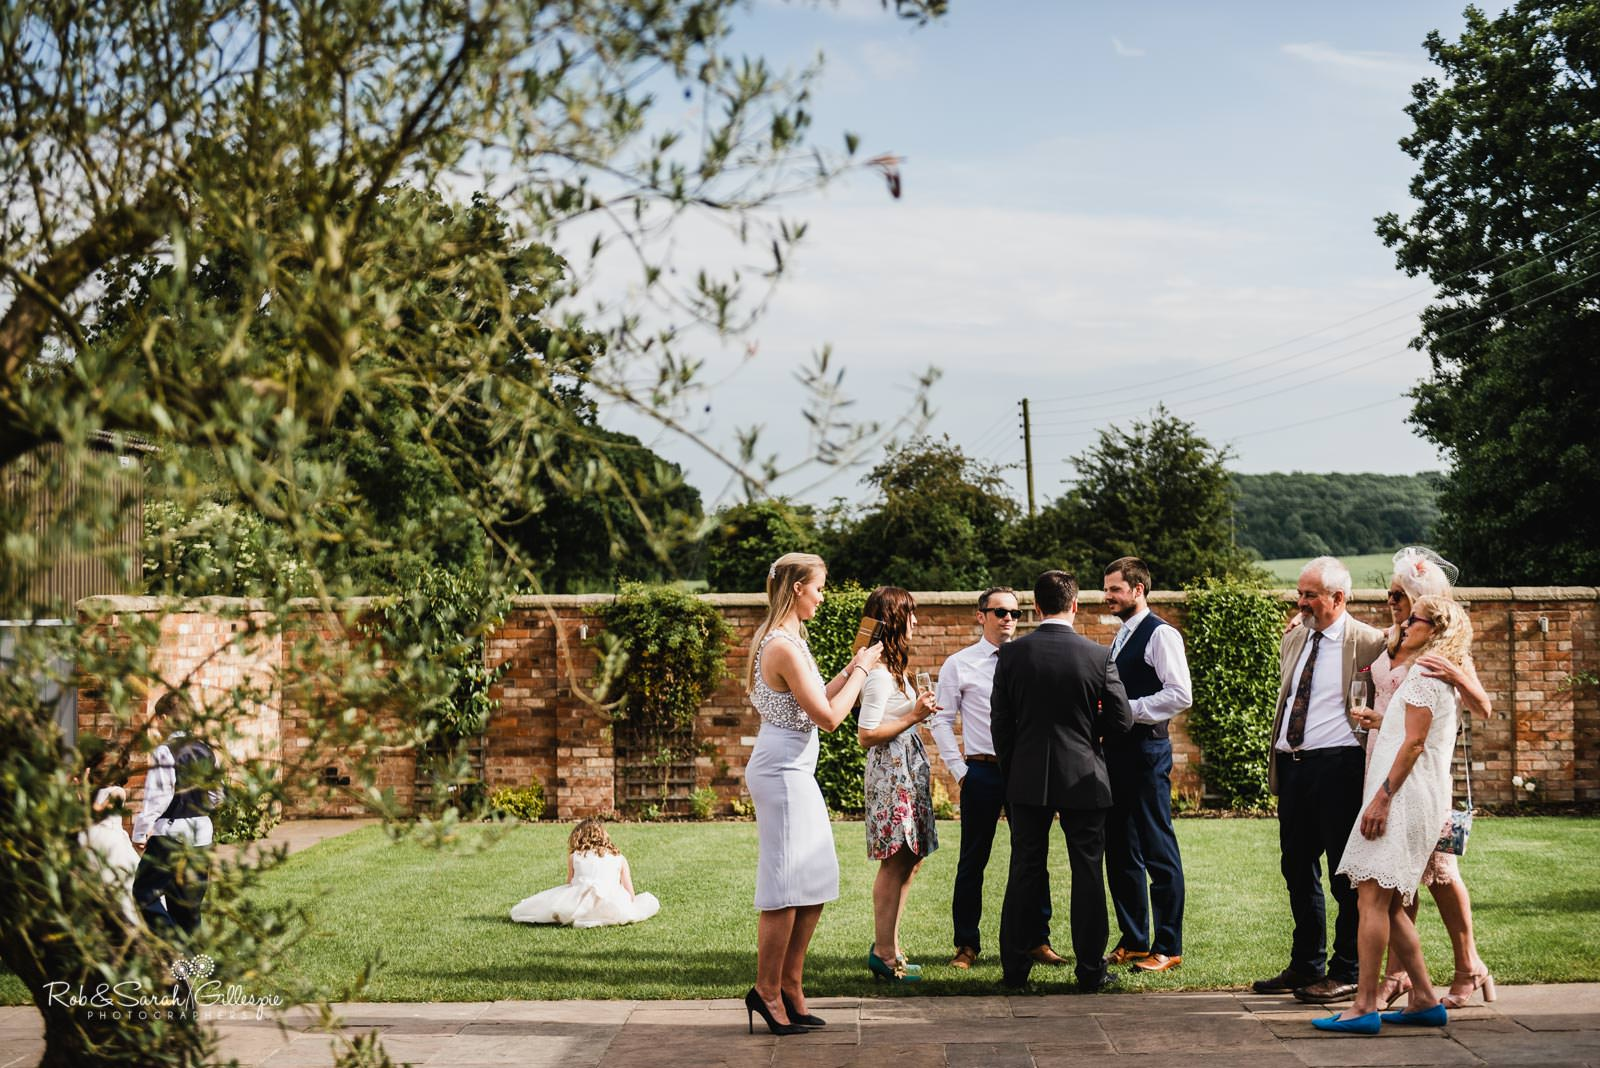 Guests relaxing at Swallows Nest Barn wedding